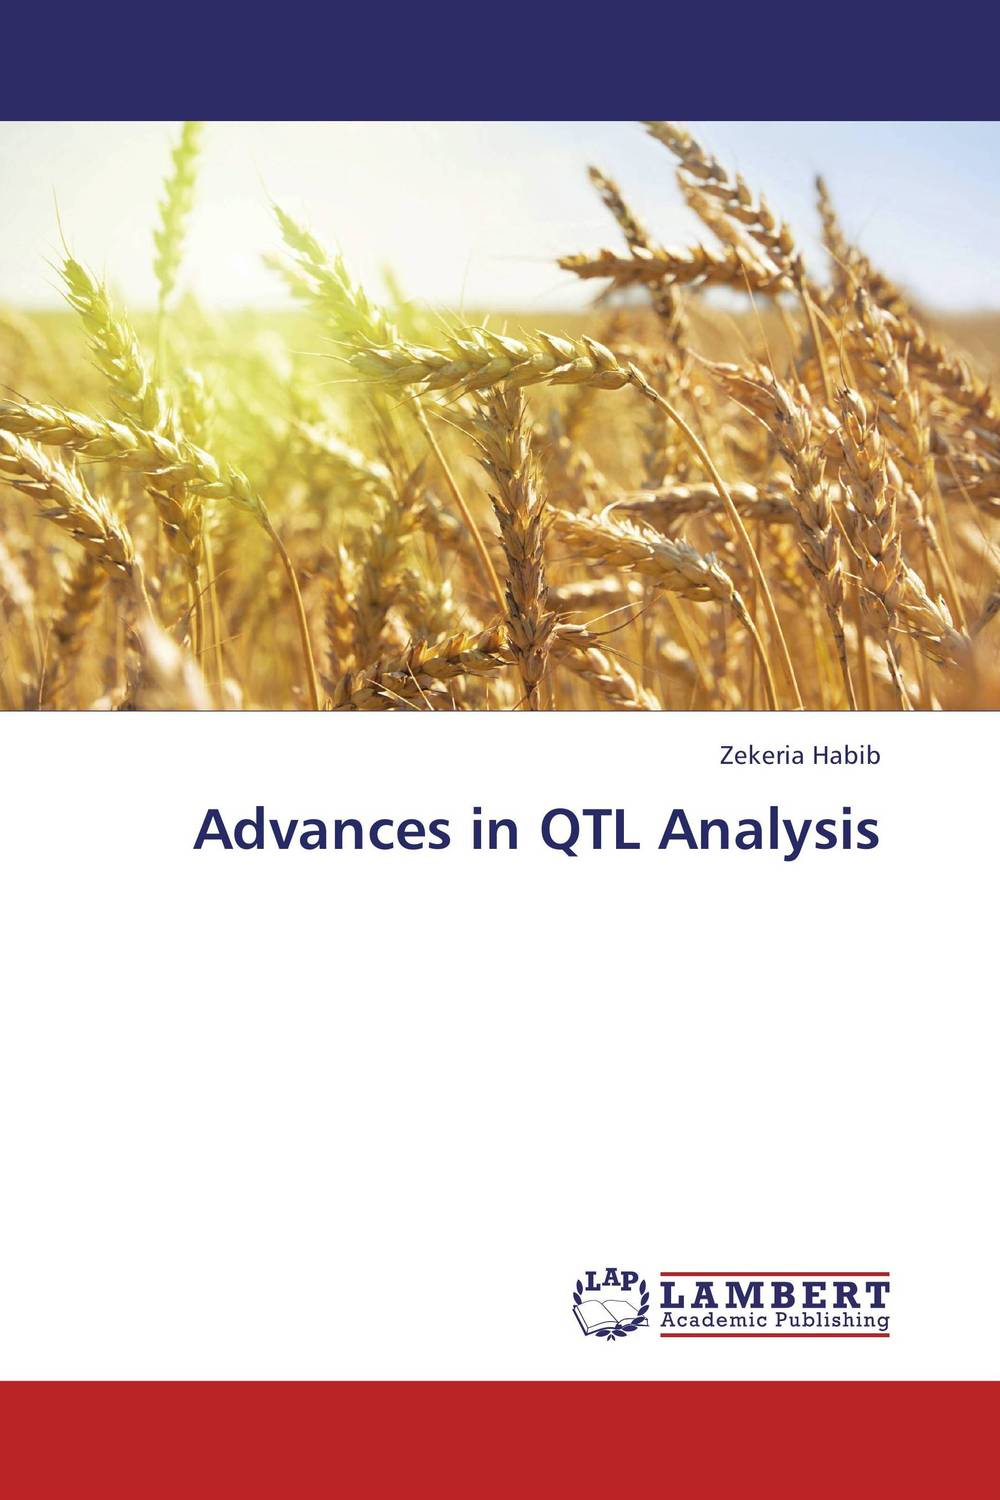 Advances in QTL Analysis evaluation of various methods of fertilizer application in potato